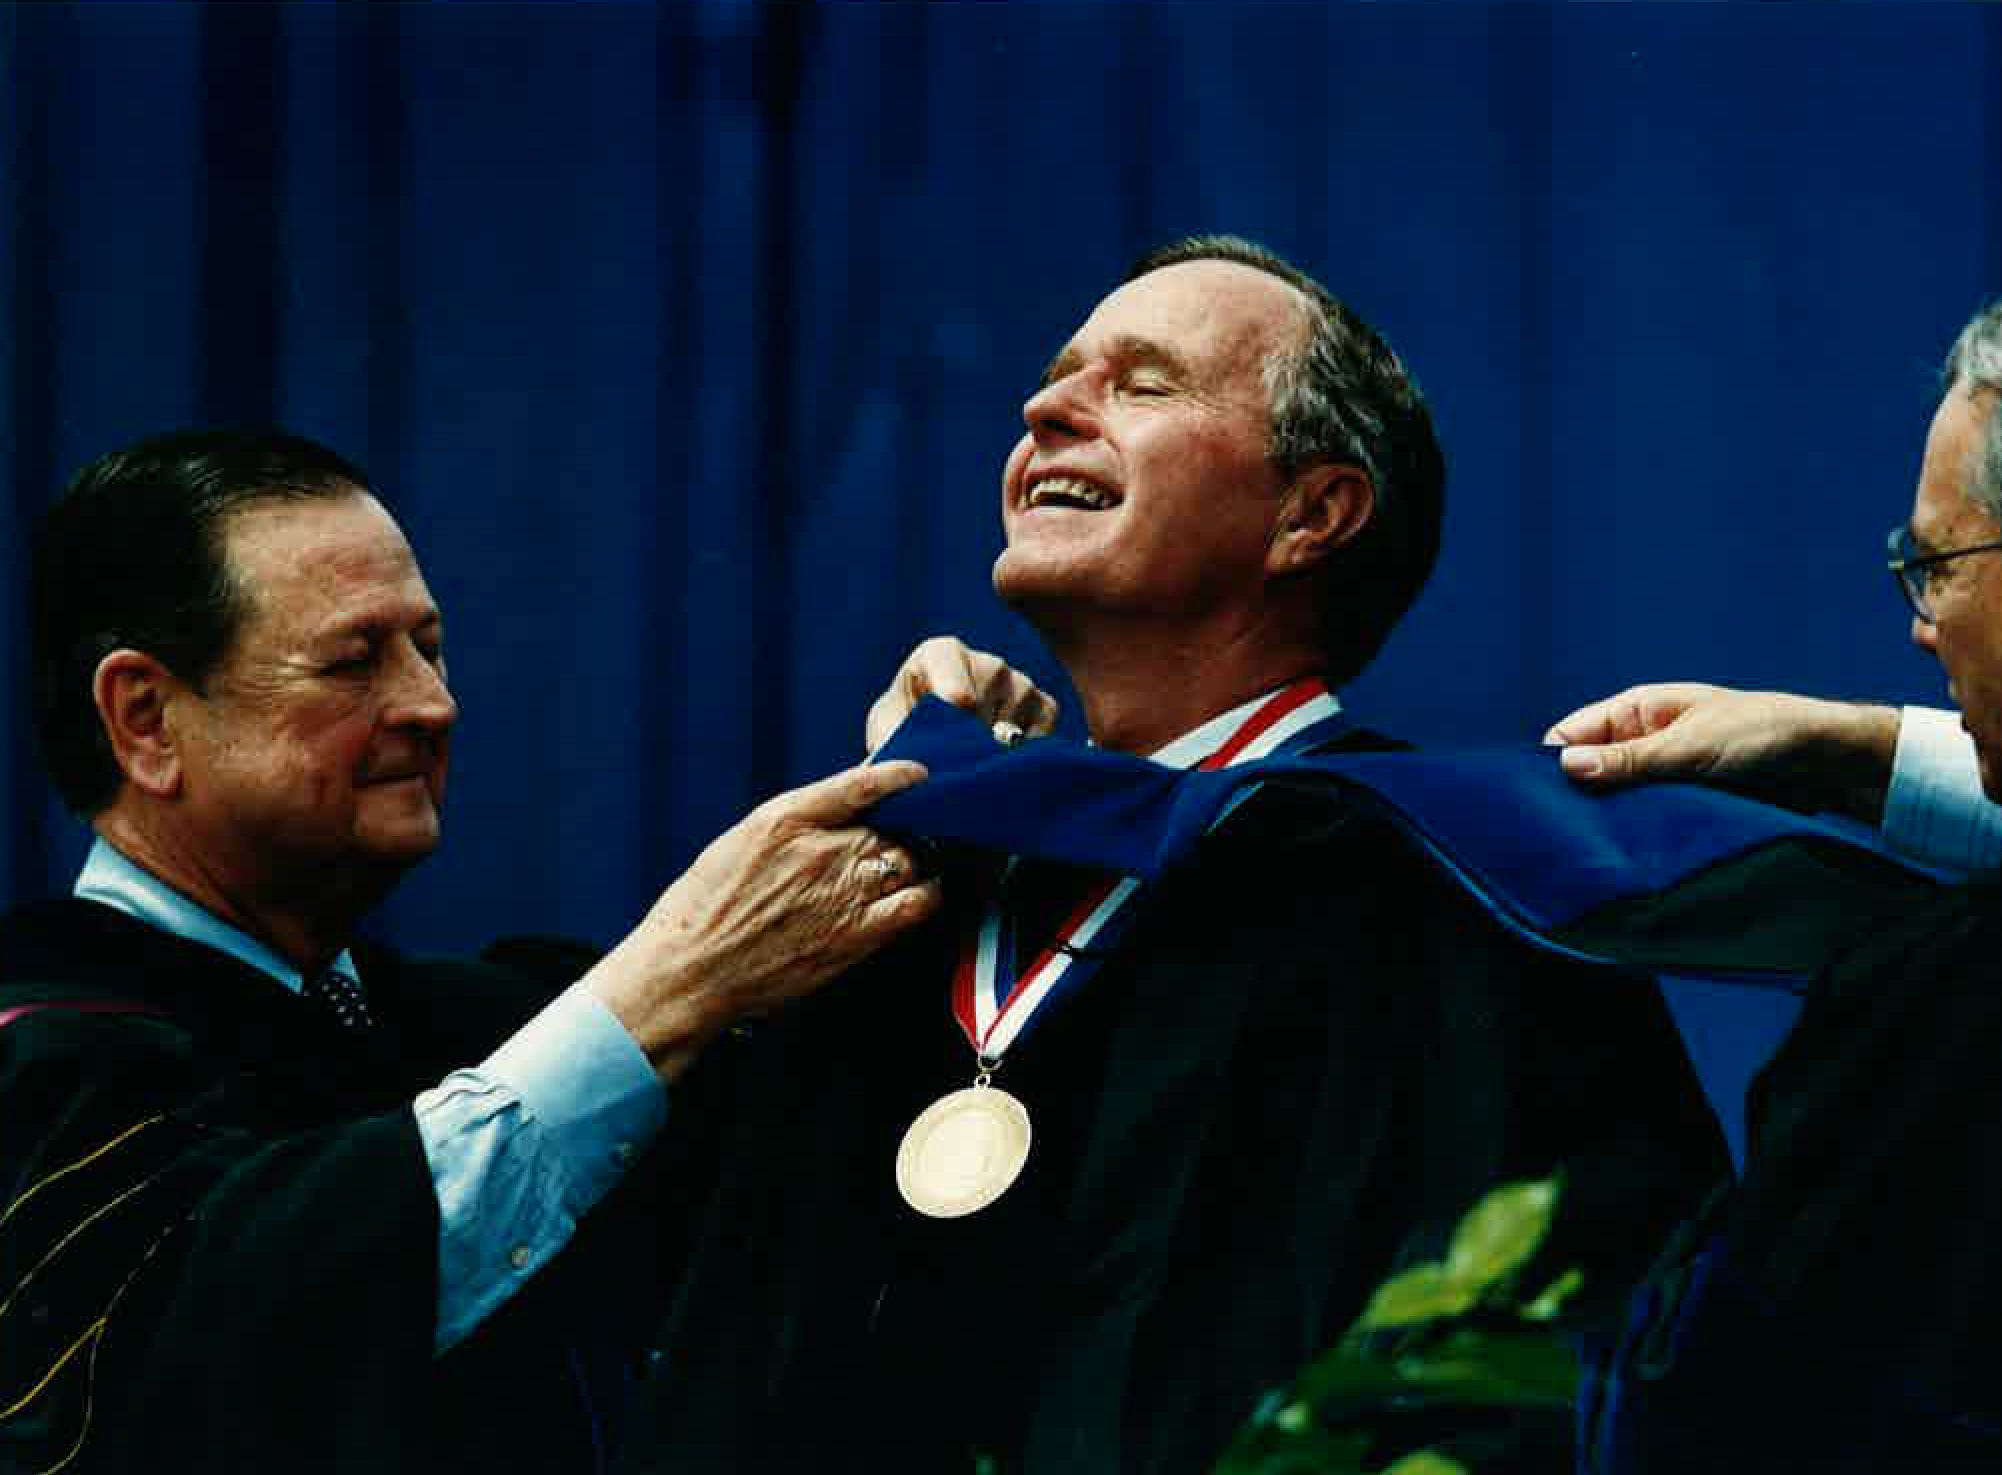 Chairman of the Texas A&M System Board of Regents, William A. McKenzie (eft), and Texas A&I University President Dr. Manuel L. Ibanez present President George H.W. Bush with a doctoral hood after presenting him an honorary degree medal prior to Bush's commencement address in May 1990.